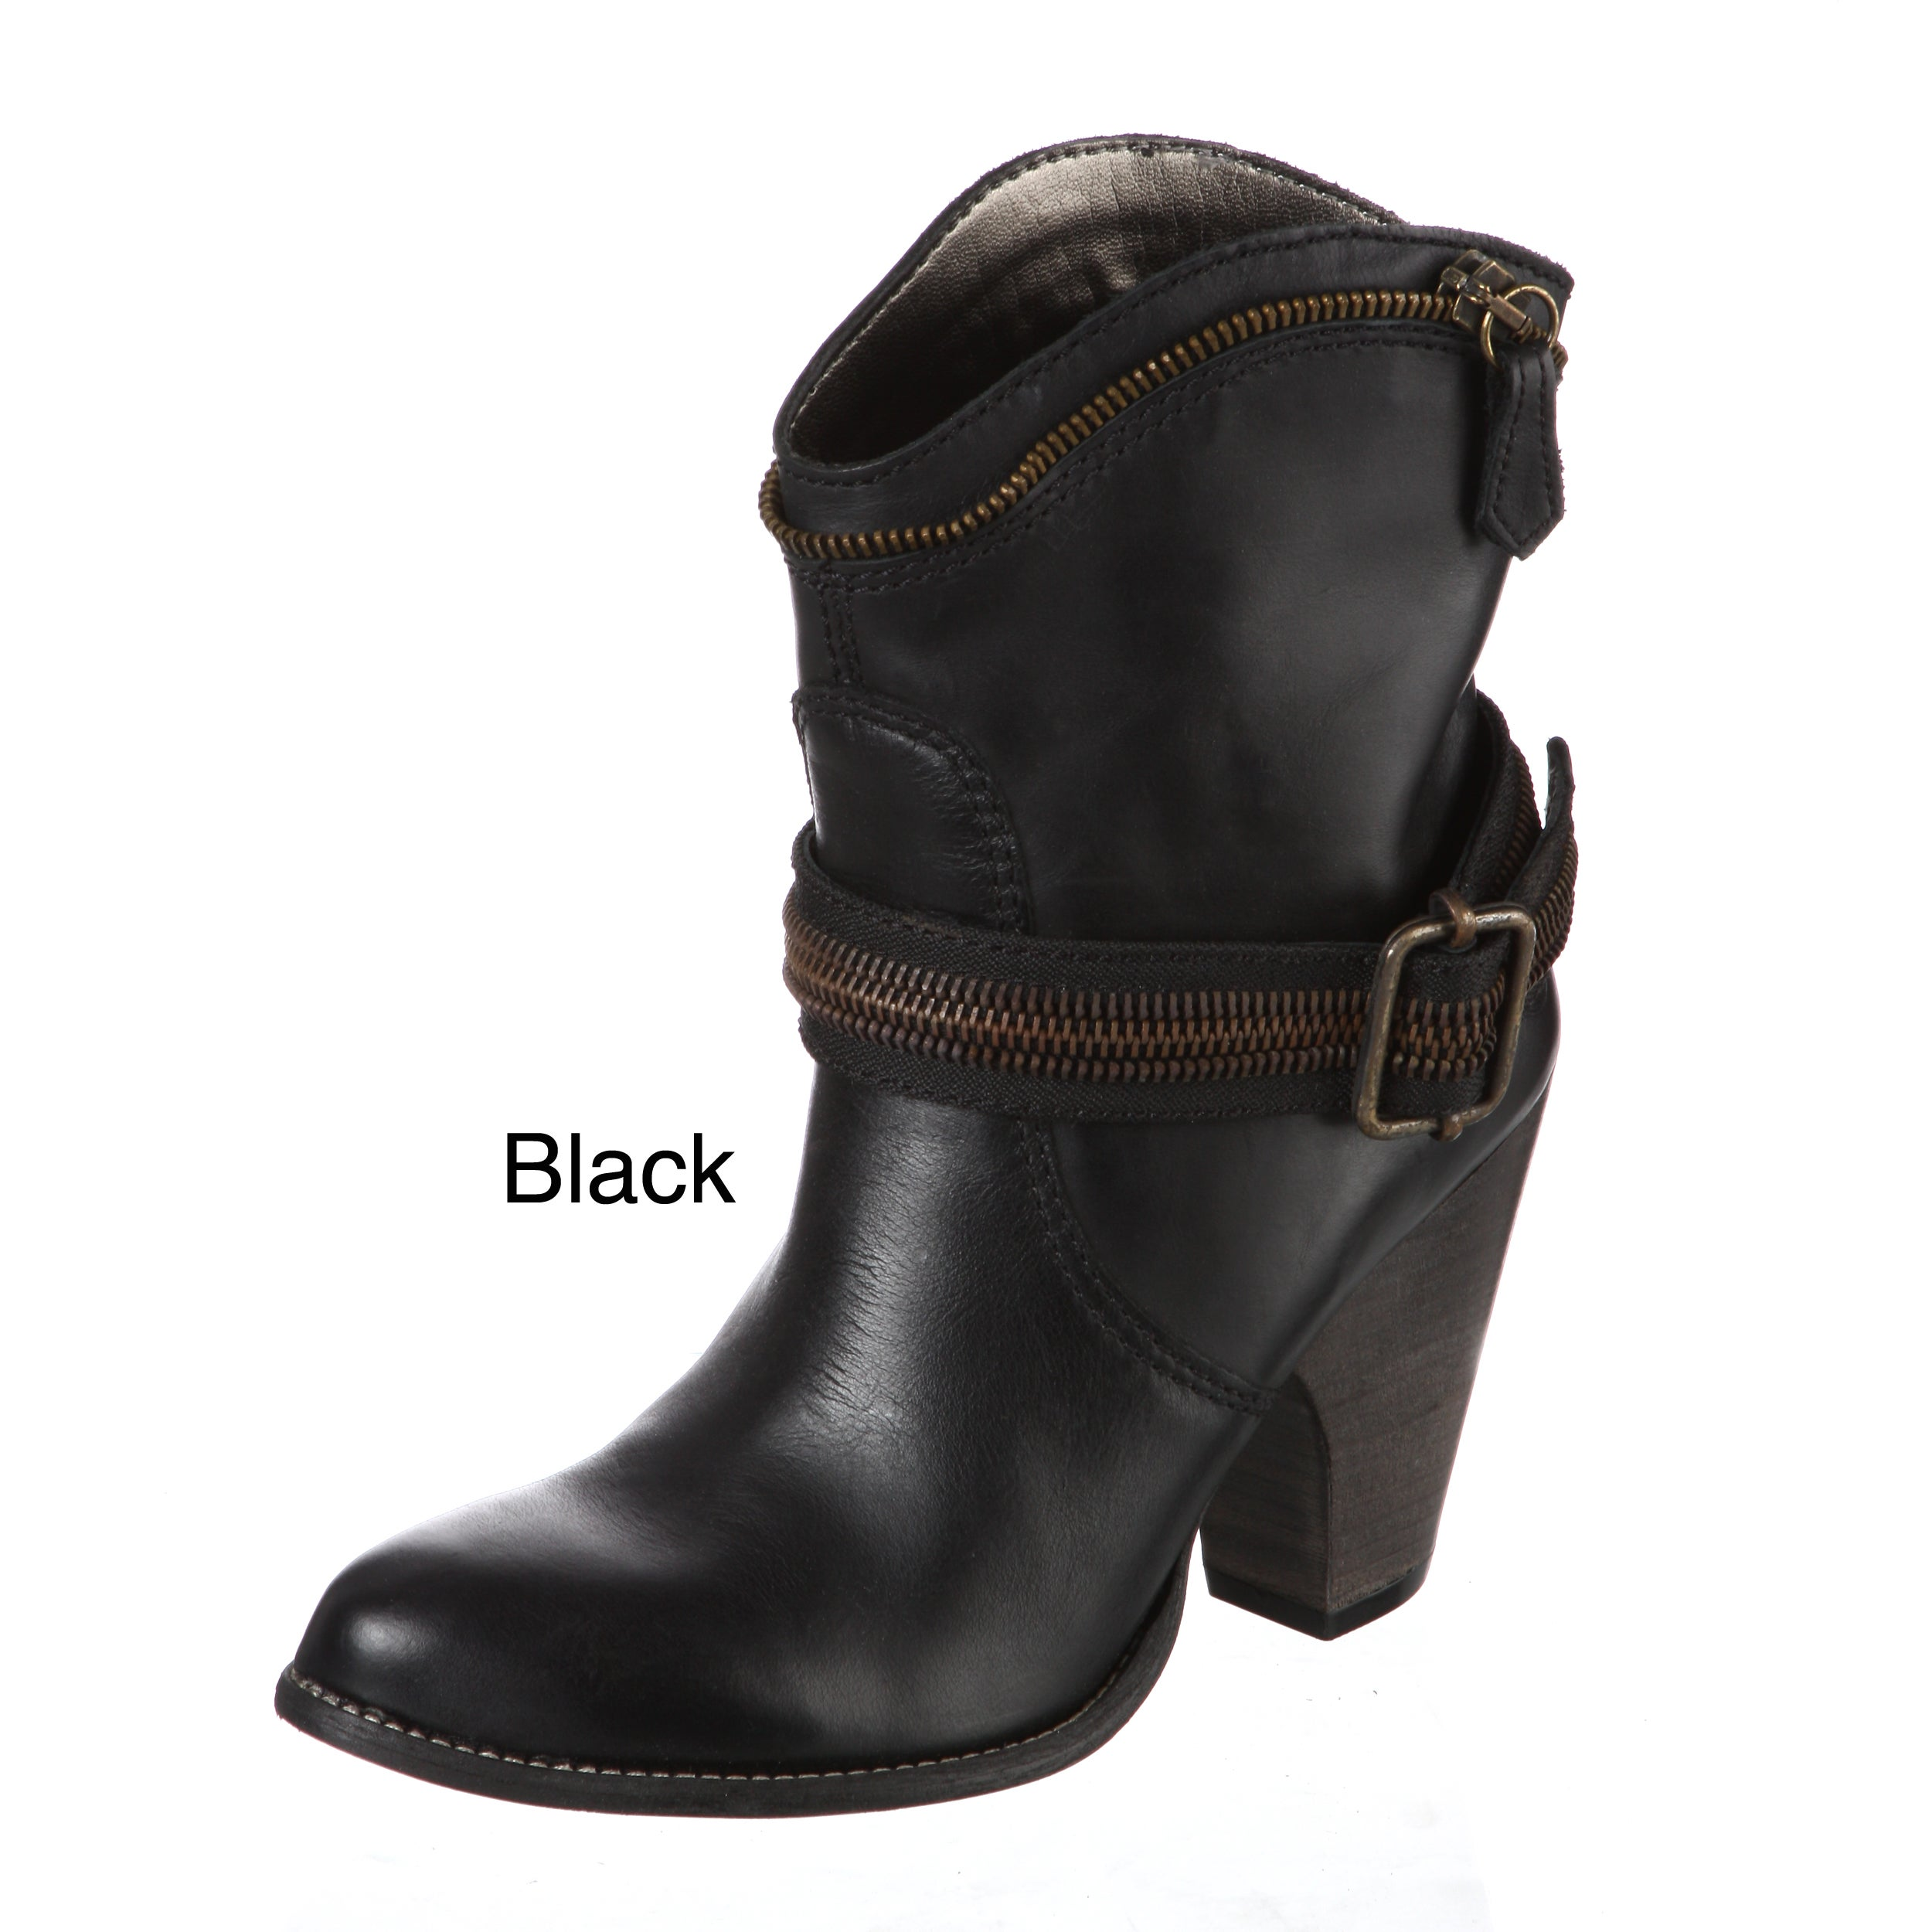 Shipping Women's Buckle Zipper On Free Overstock Orders Bronx Ankle Over Boots 6455718 45 Shop Fq0xRpw5Z